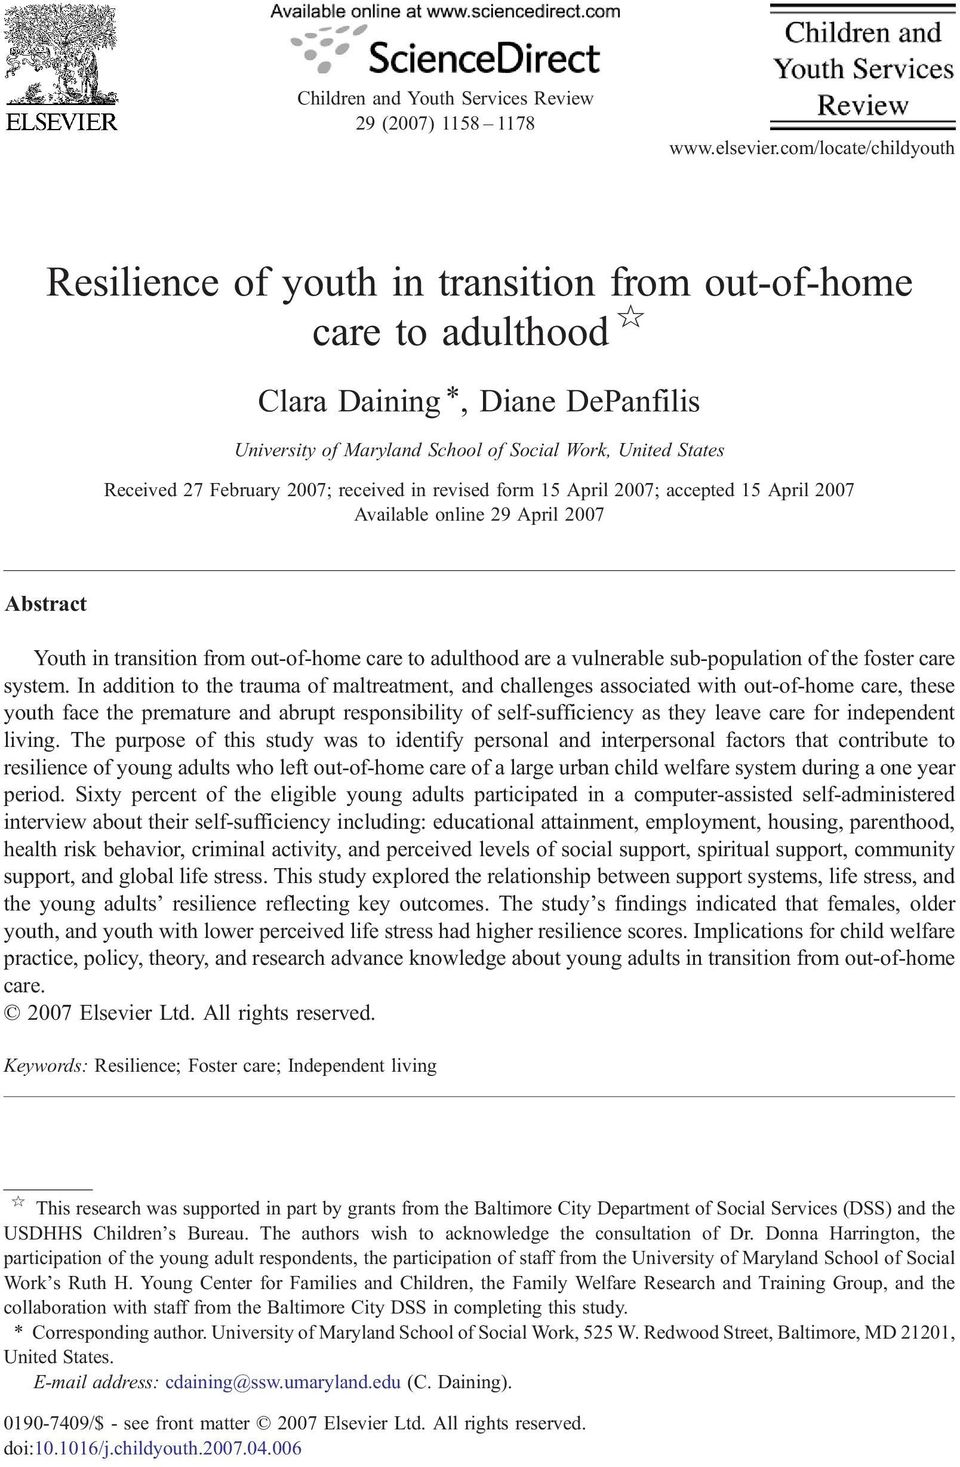 February 2007; received in revised form 15 April 2007; accepted 15 April 2007 Available online 29 April 2007 Abstract Youth in transition from out-of-home care to adulthood are a vulnerable